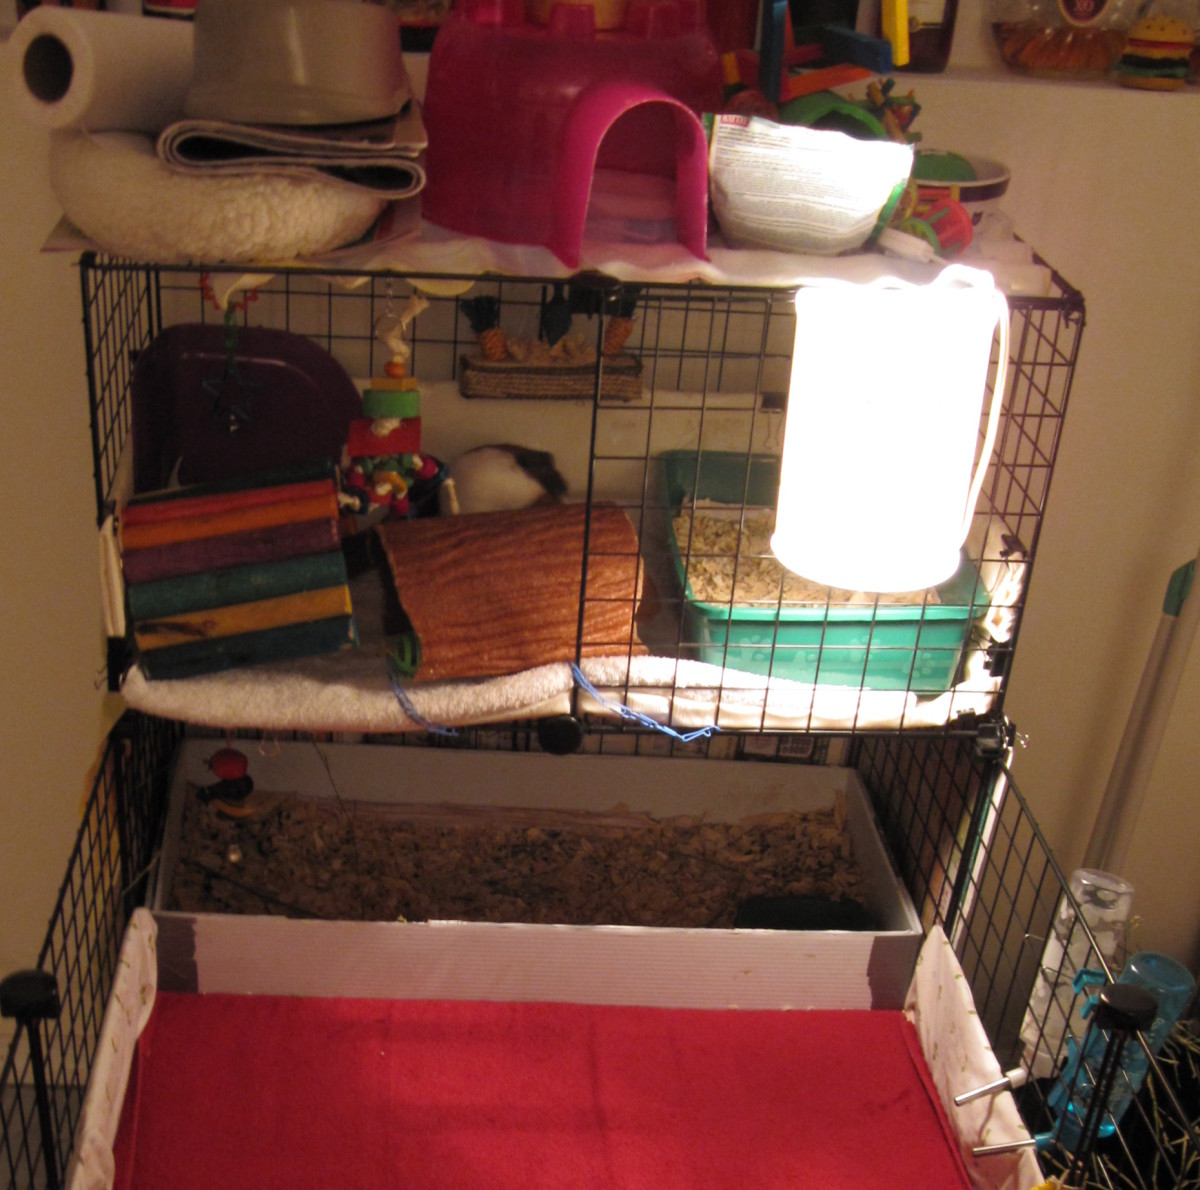 All their toys are either on the upper level with them or on the top of the cage.